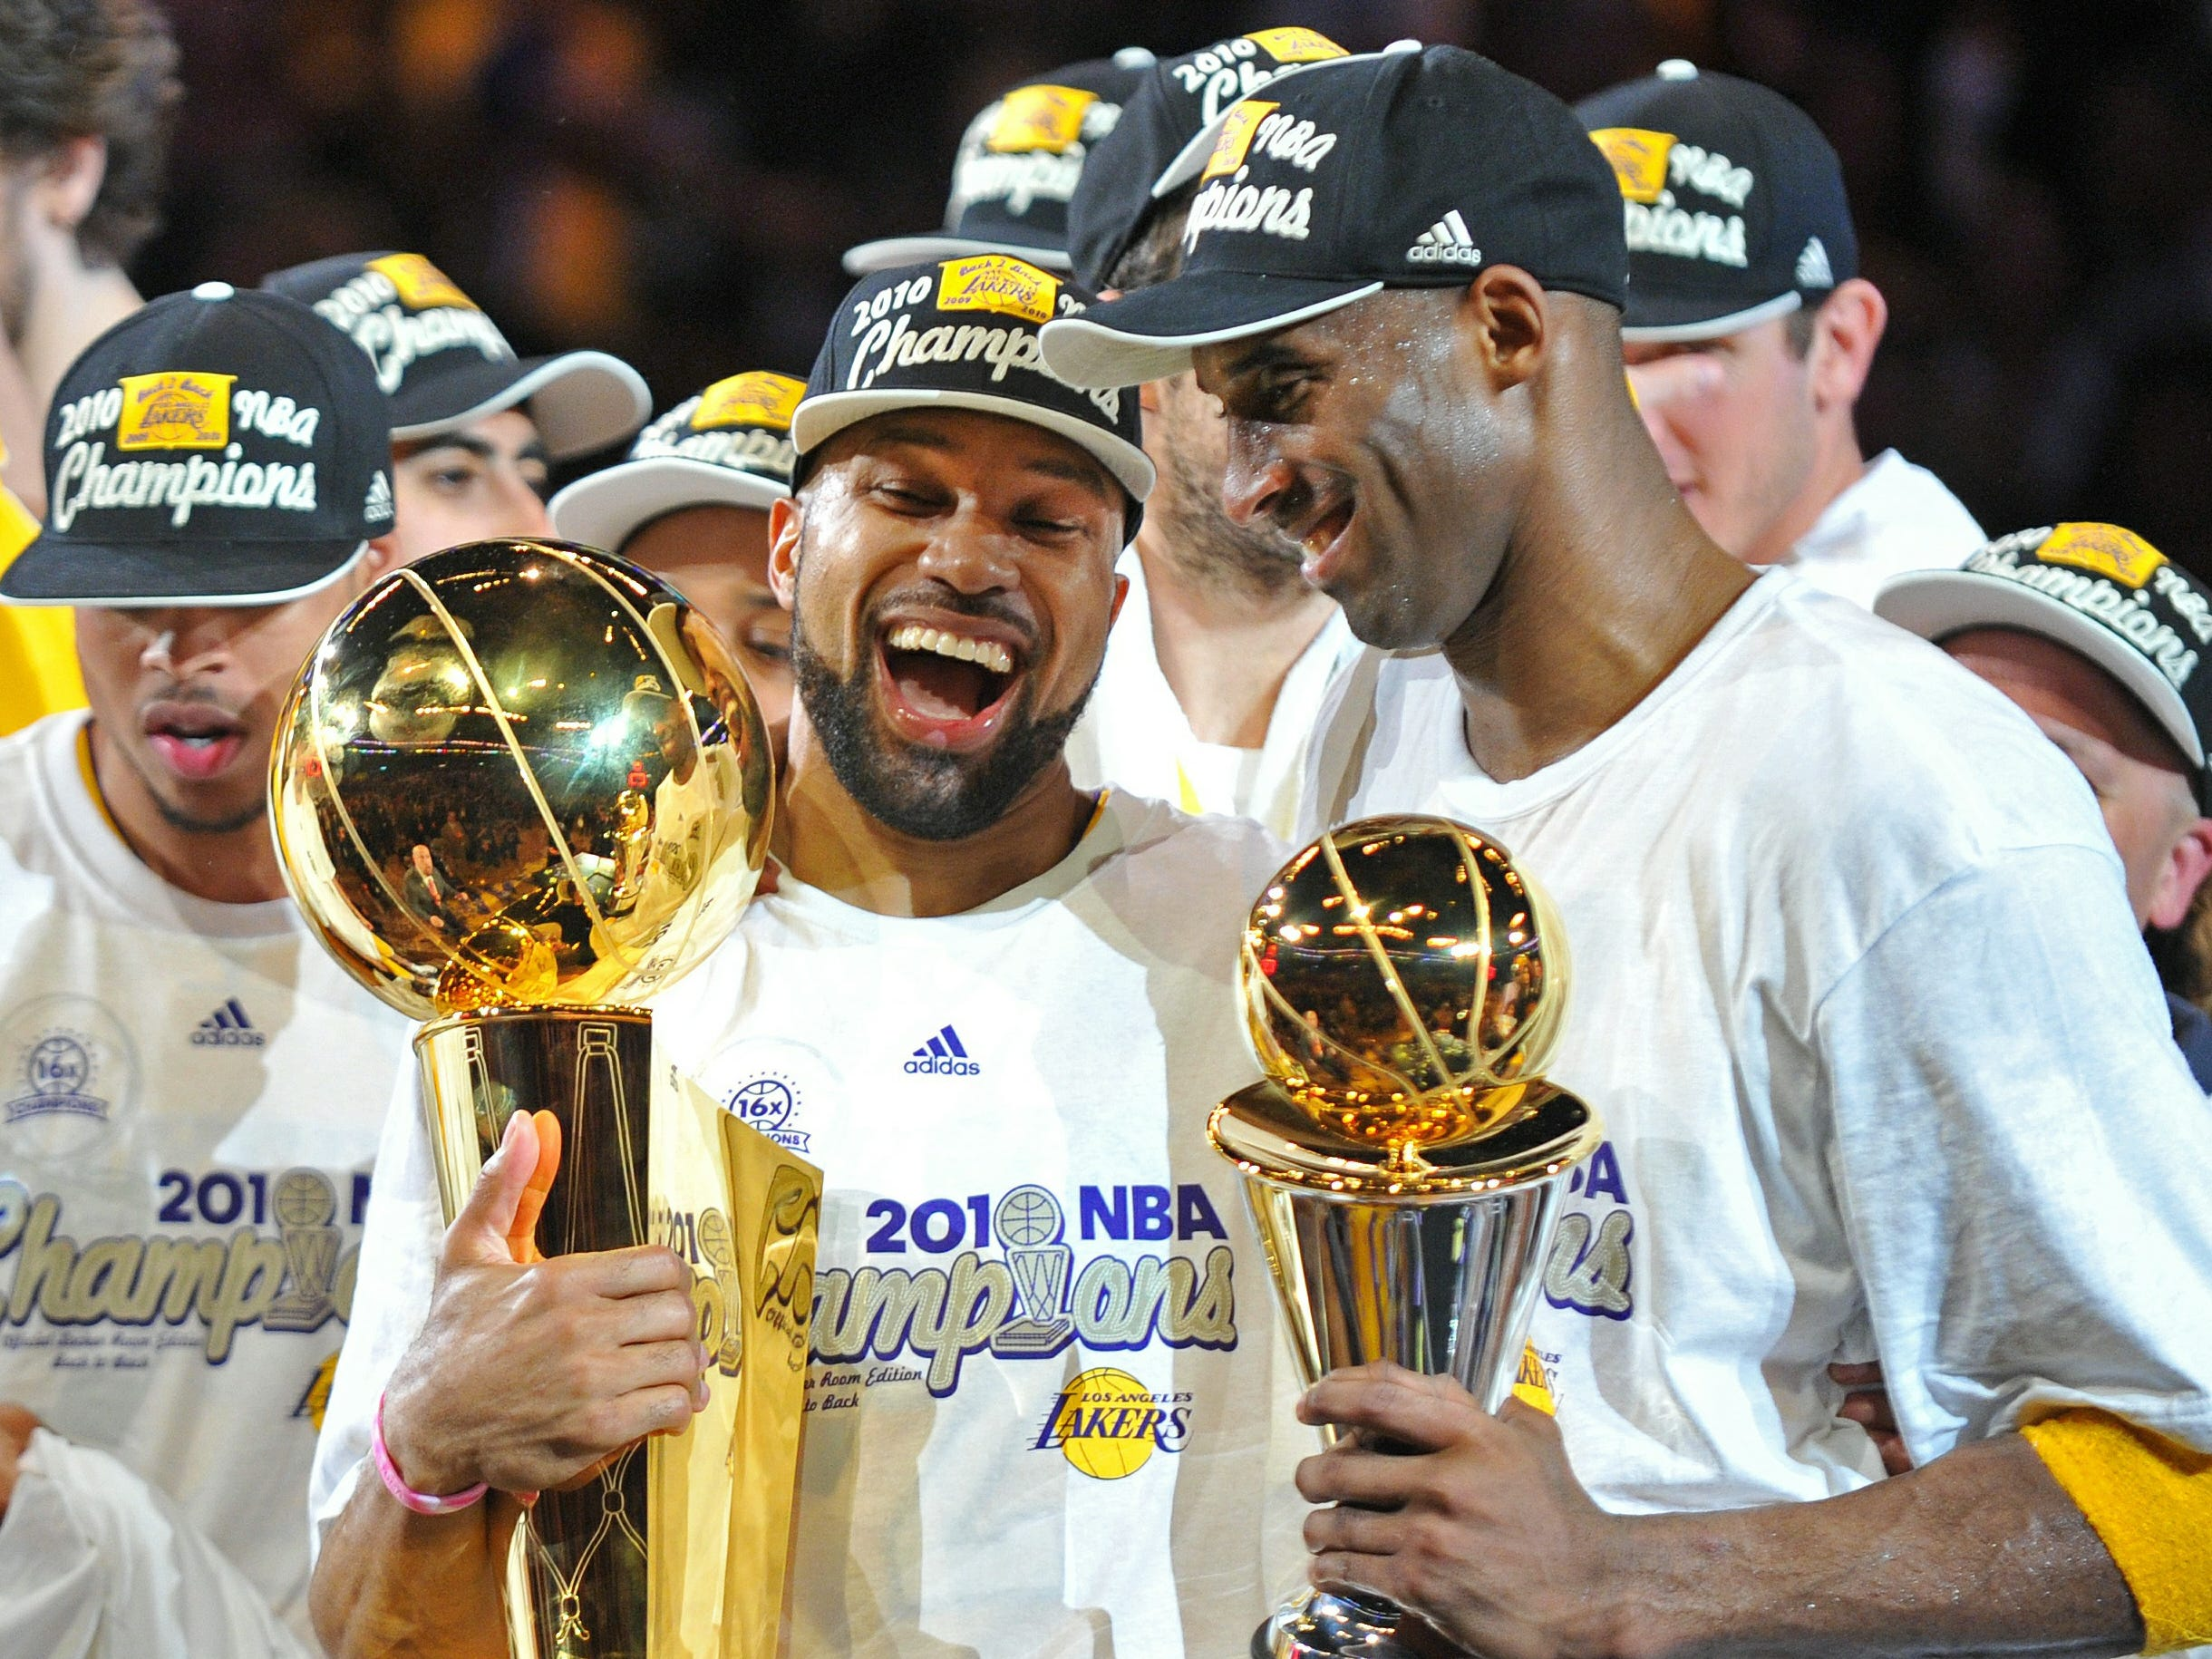 His second NBA Finals MVP came the next season in 2010 against the Boston Celtics.